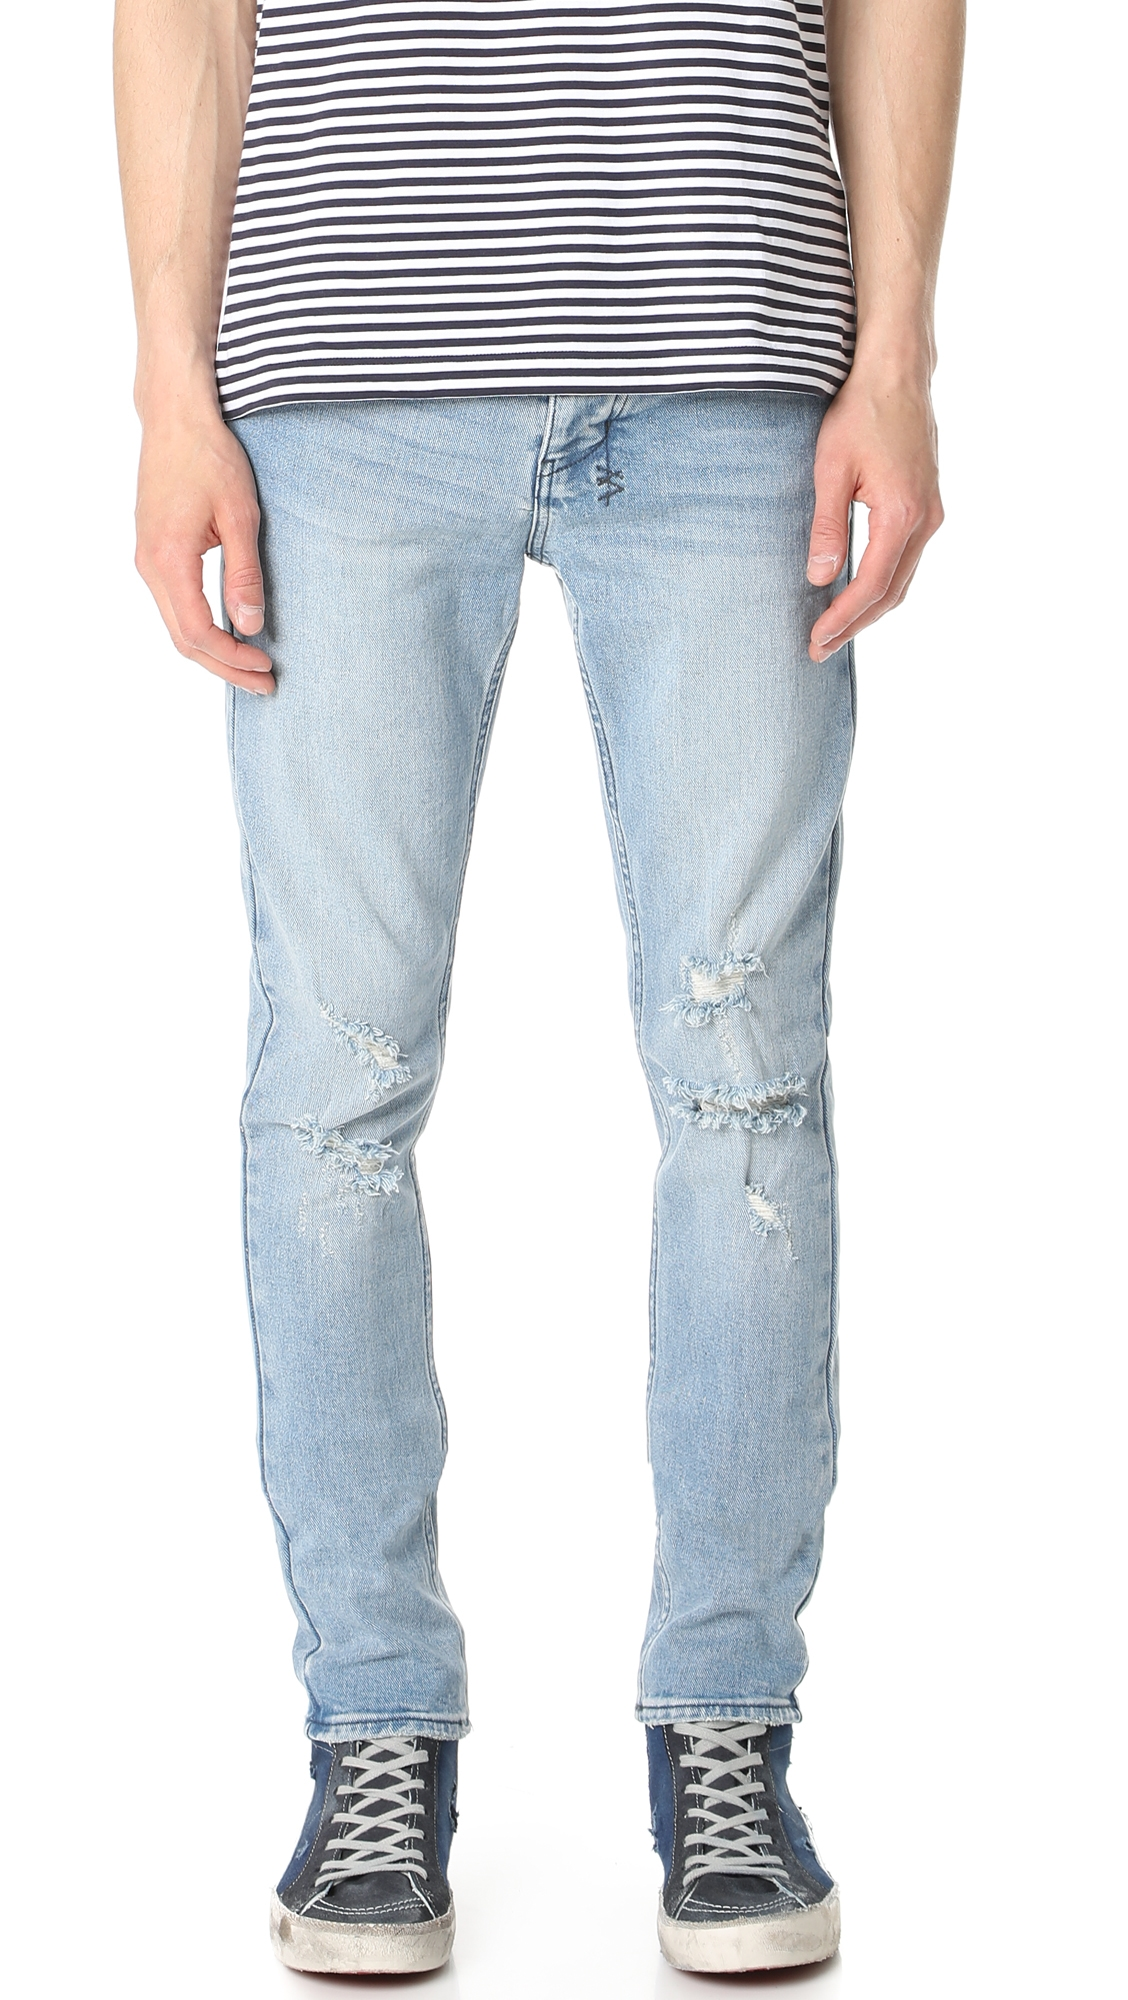 Chitch Philly Blue Jeans